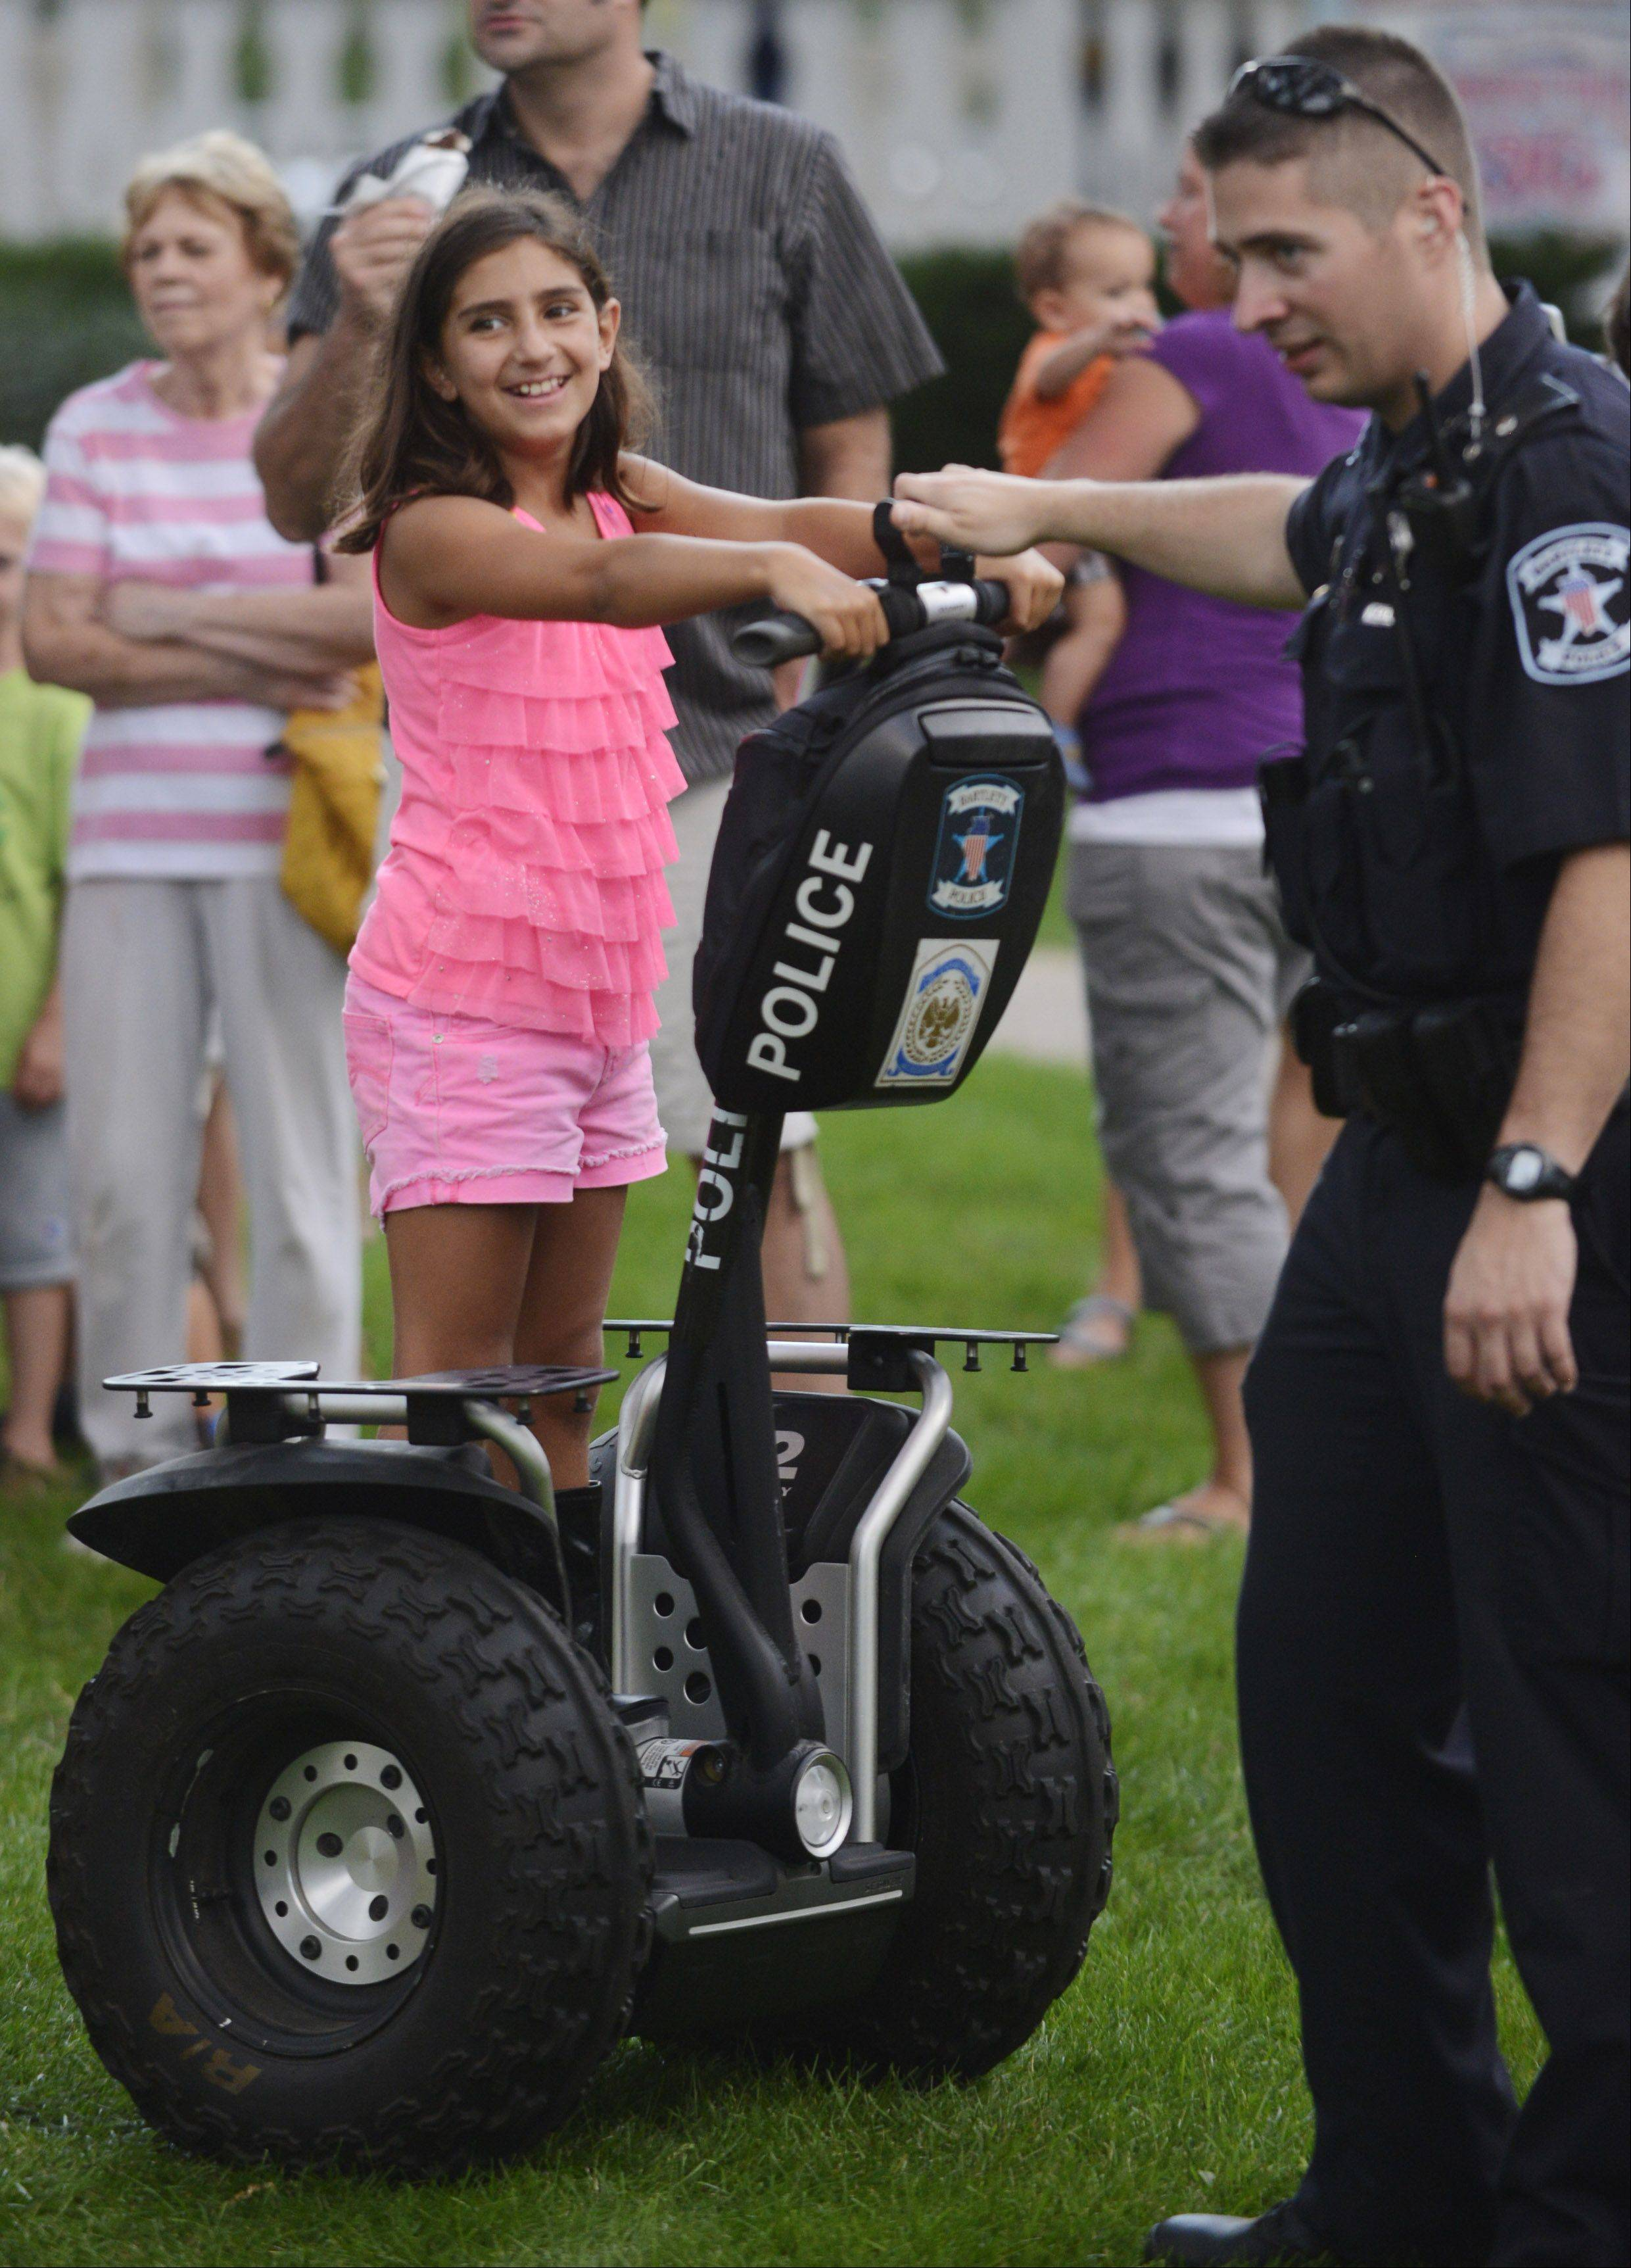 Gina Giuseffi, 9, of Bartlett rides a police Segway with the help of Officer Brian Camarata during the Bartlett National Night Out at Bartlett Park Tuesday.